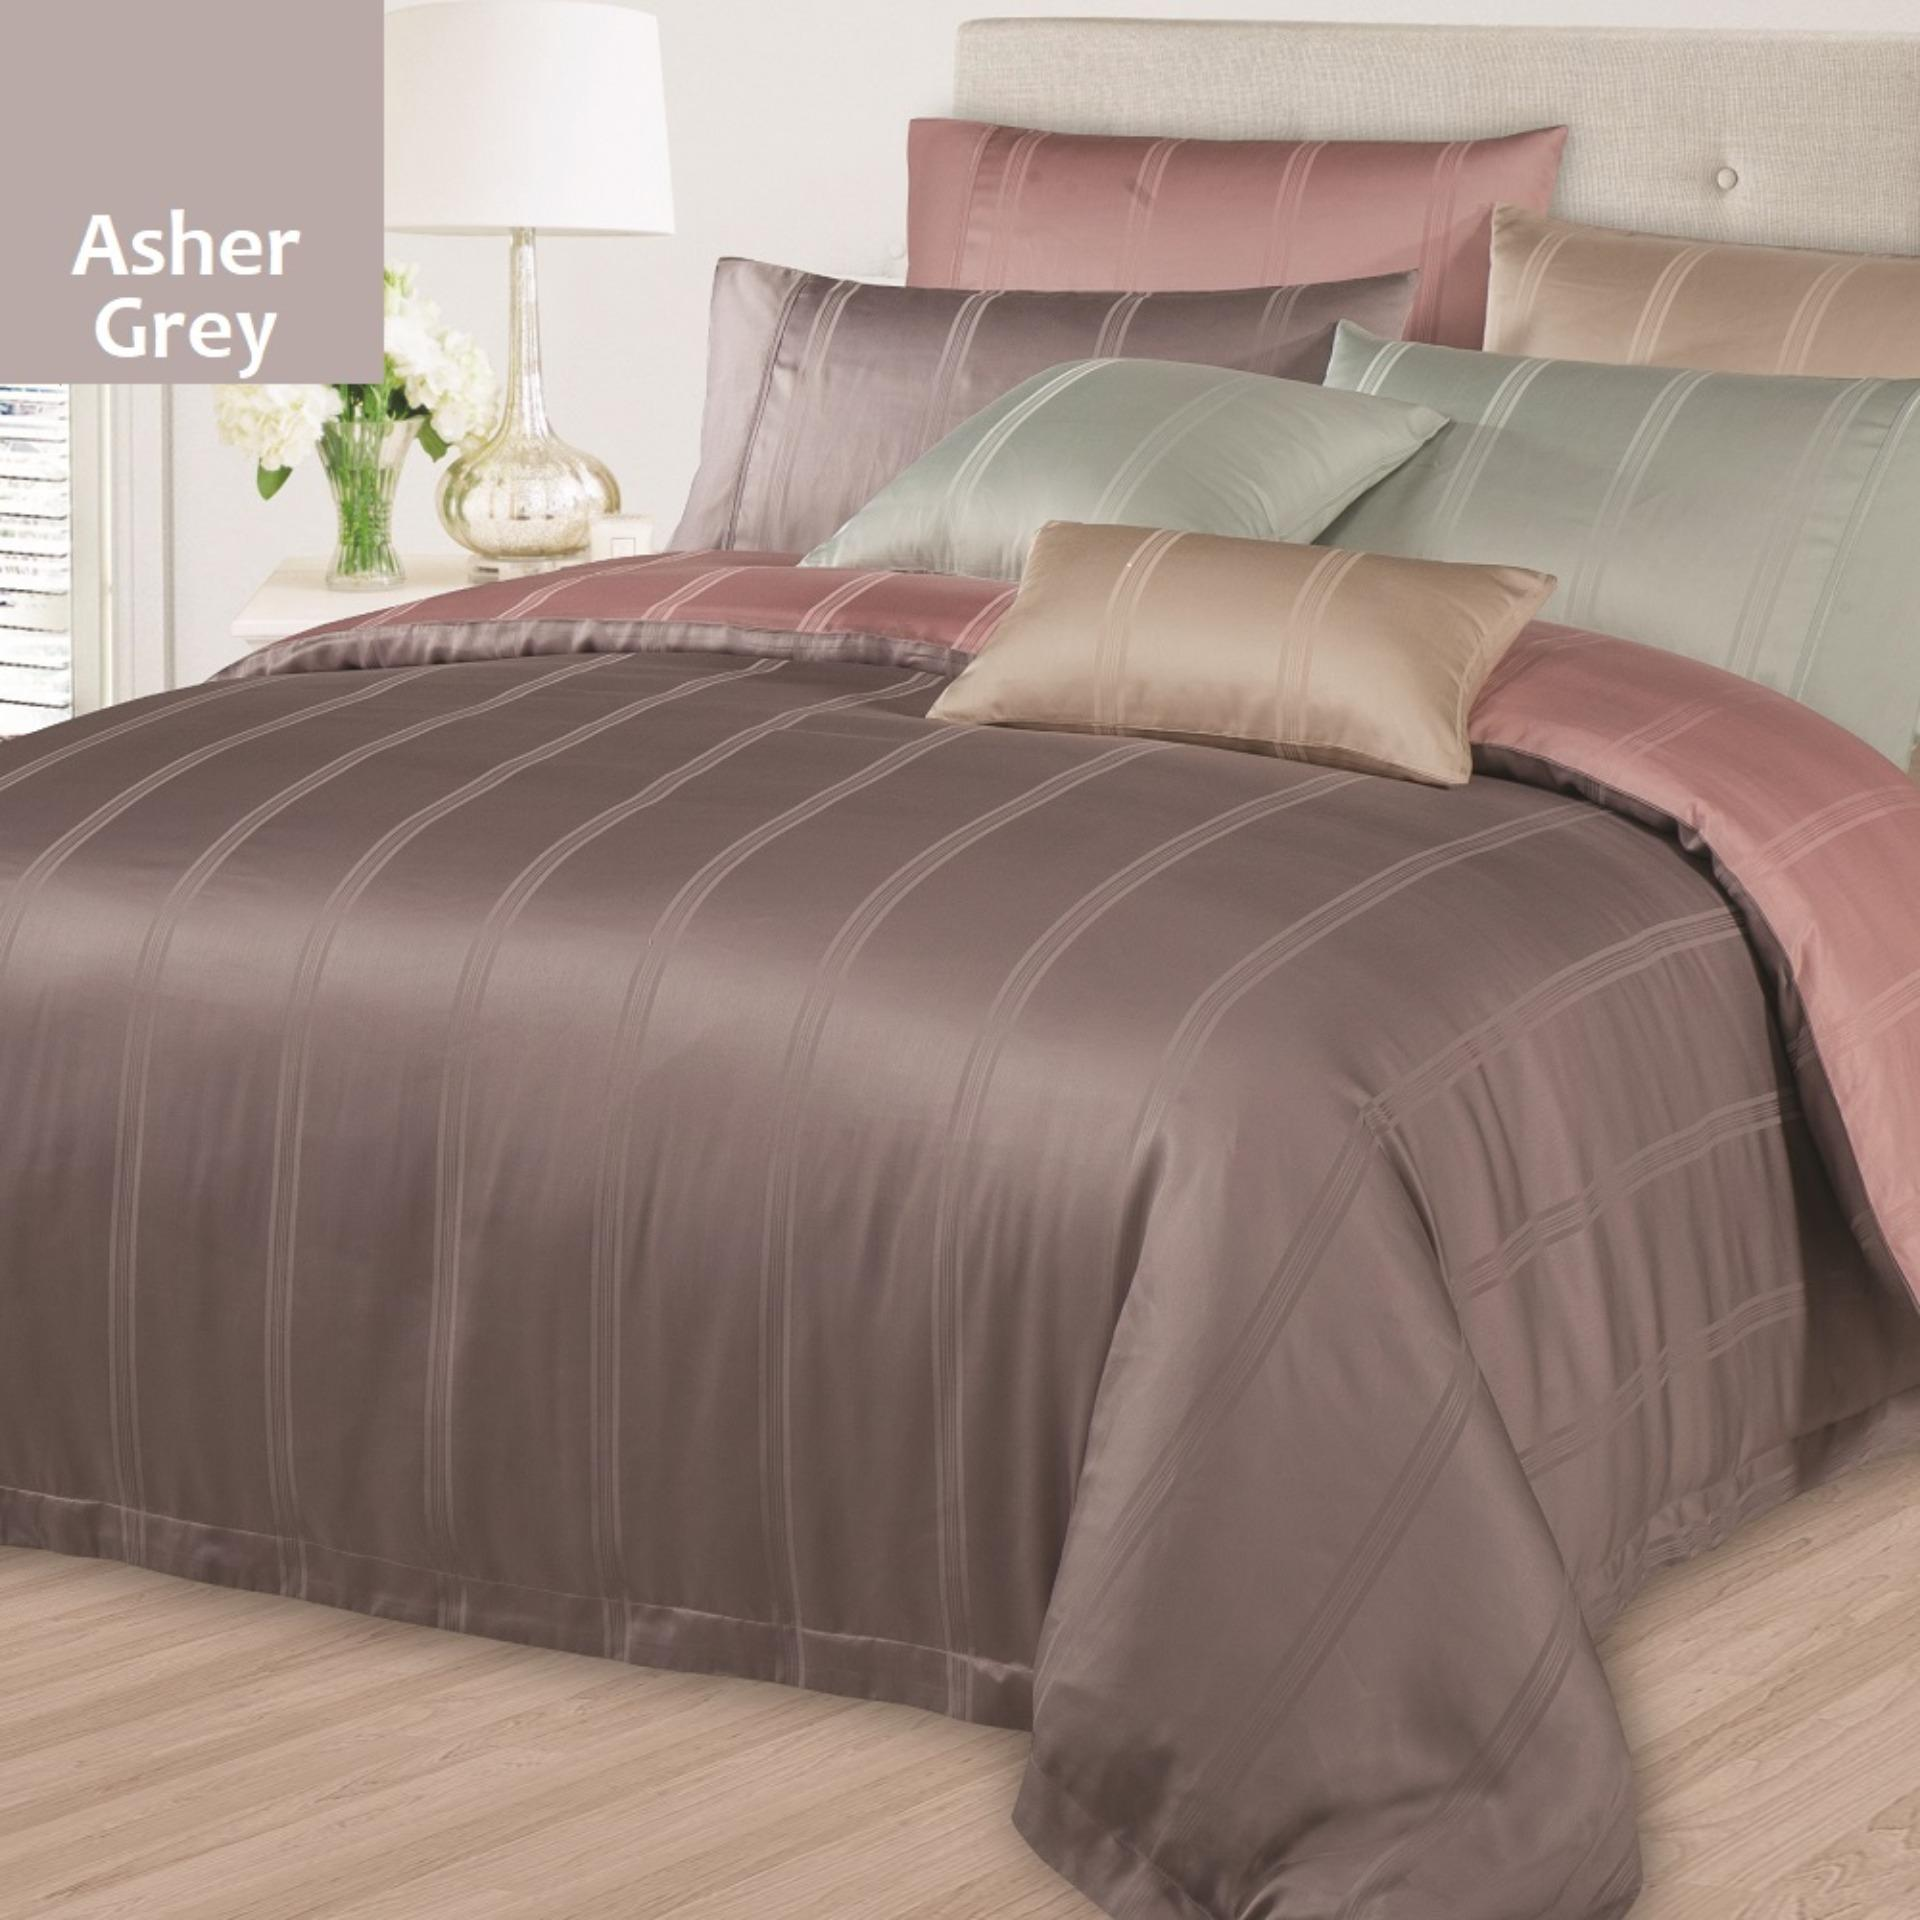 Price Compare Akemi Modal Unity Anya Stripes Asher Grey Bolster Case